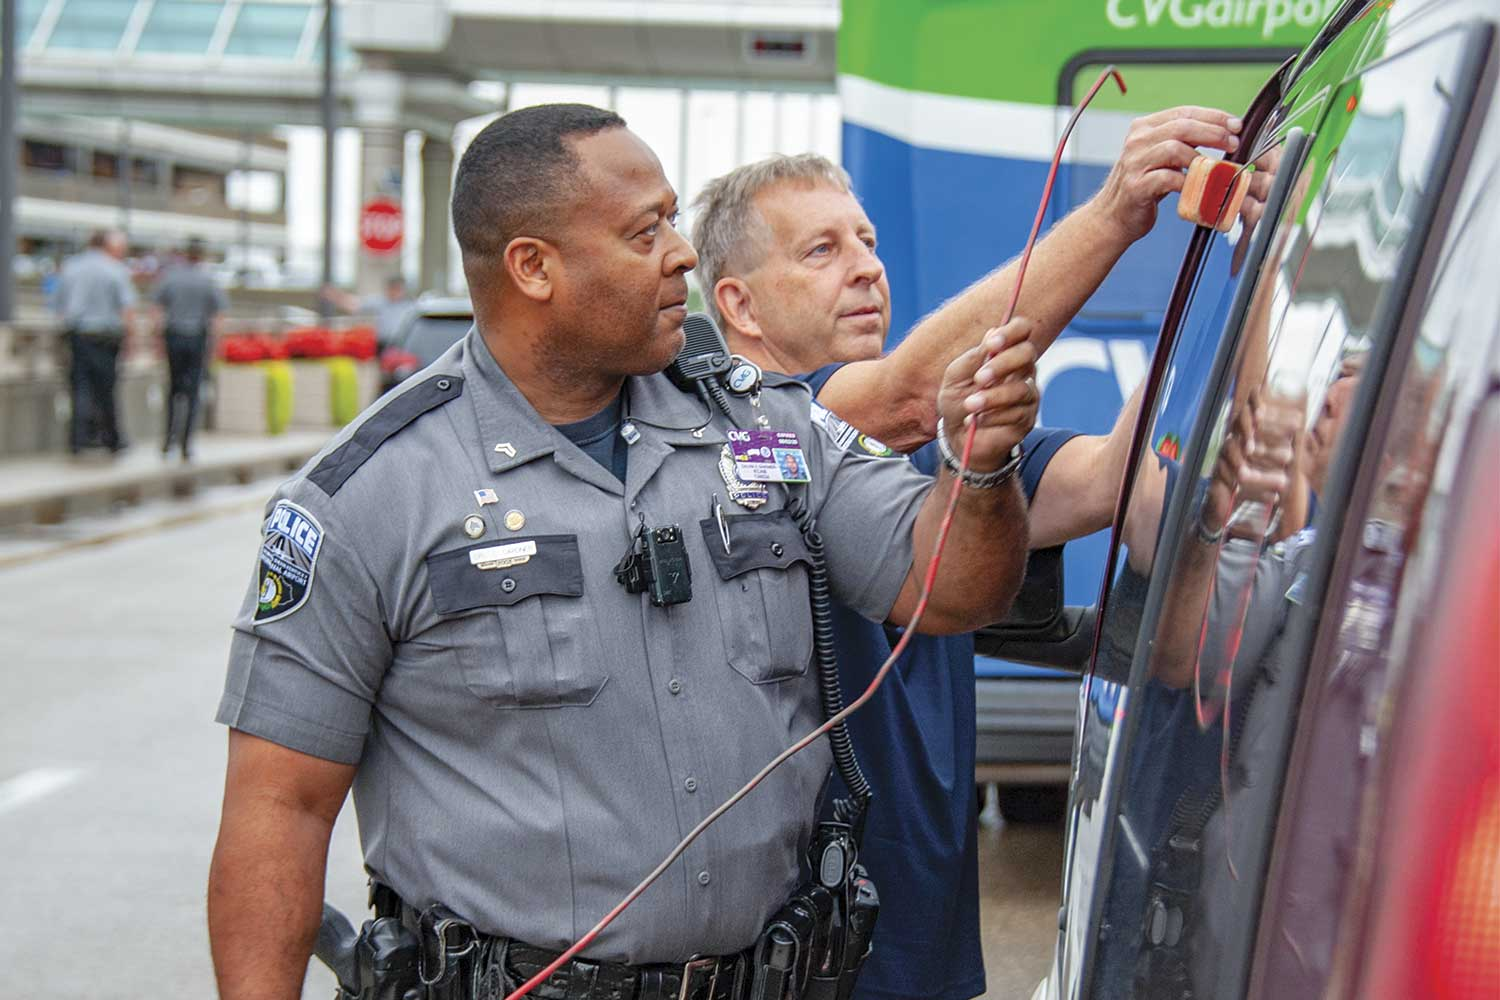 Cincinnati-Northern Kentucky International Airport Cpl. Calvin Gardner, left, helps a man unlock his van outside the main terminal. (Photo by Jim Robertson)